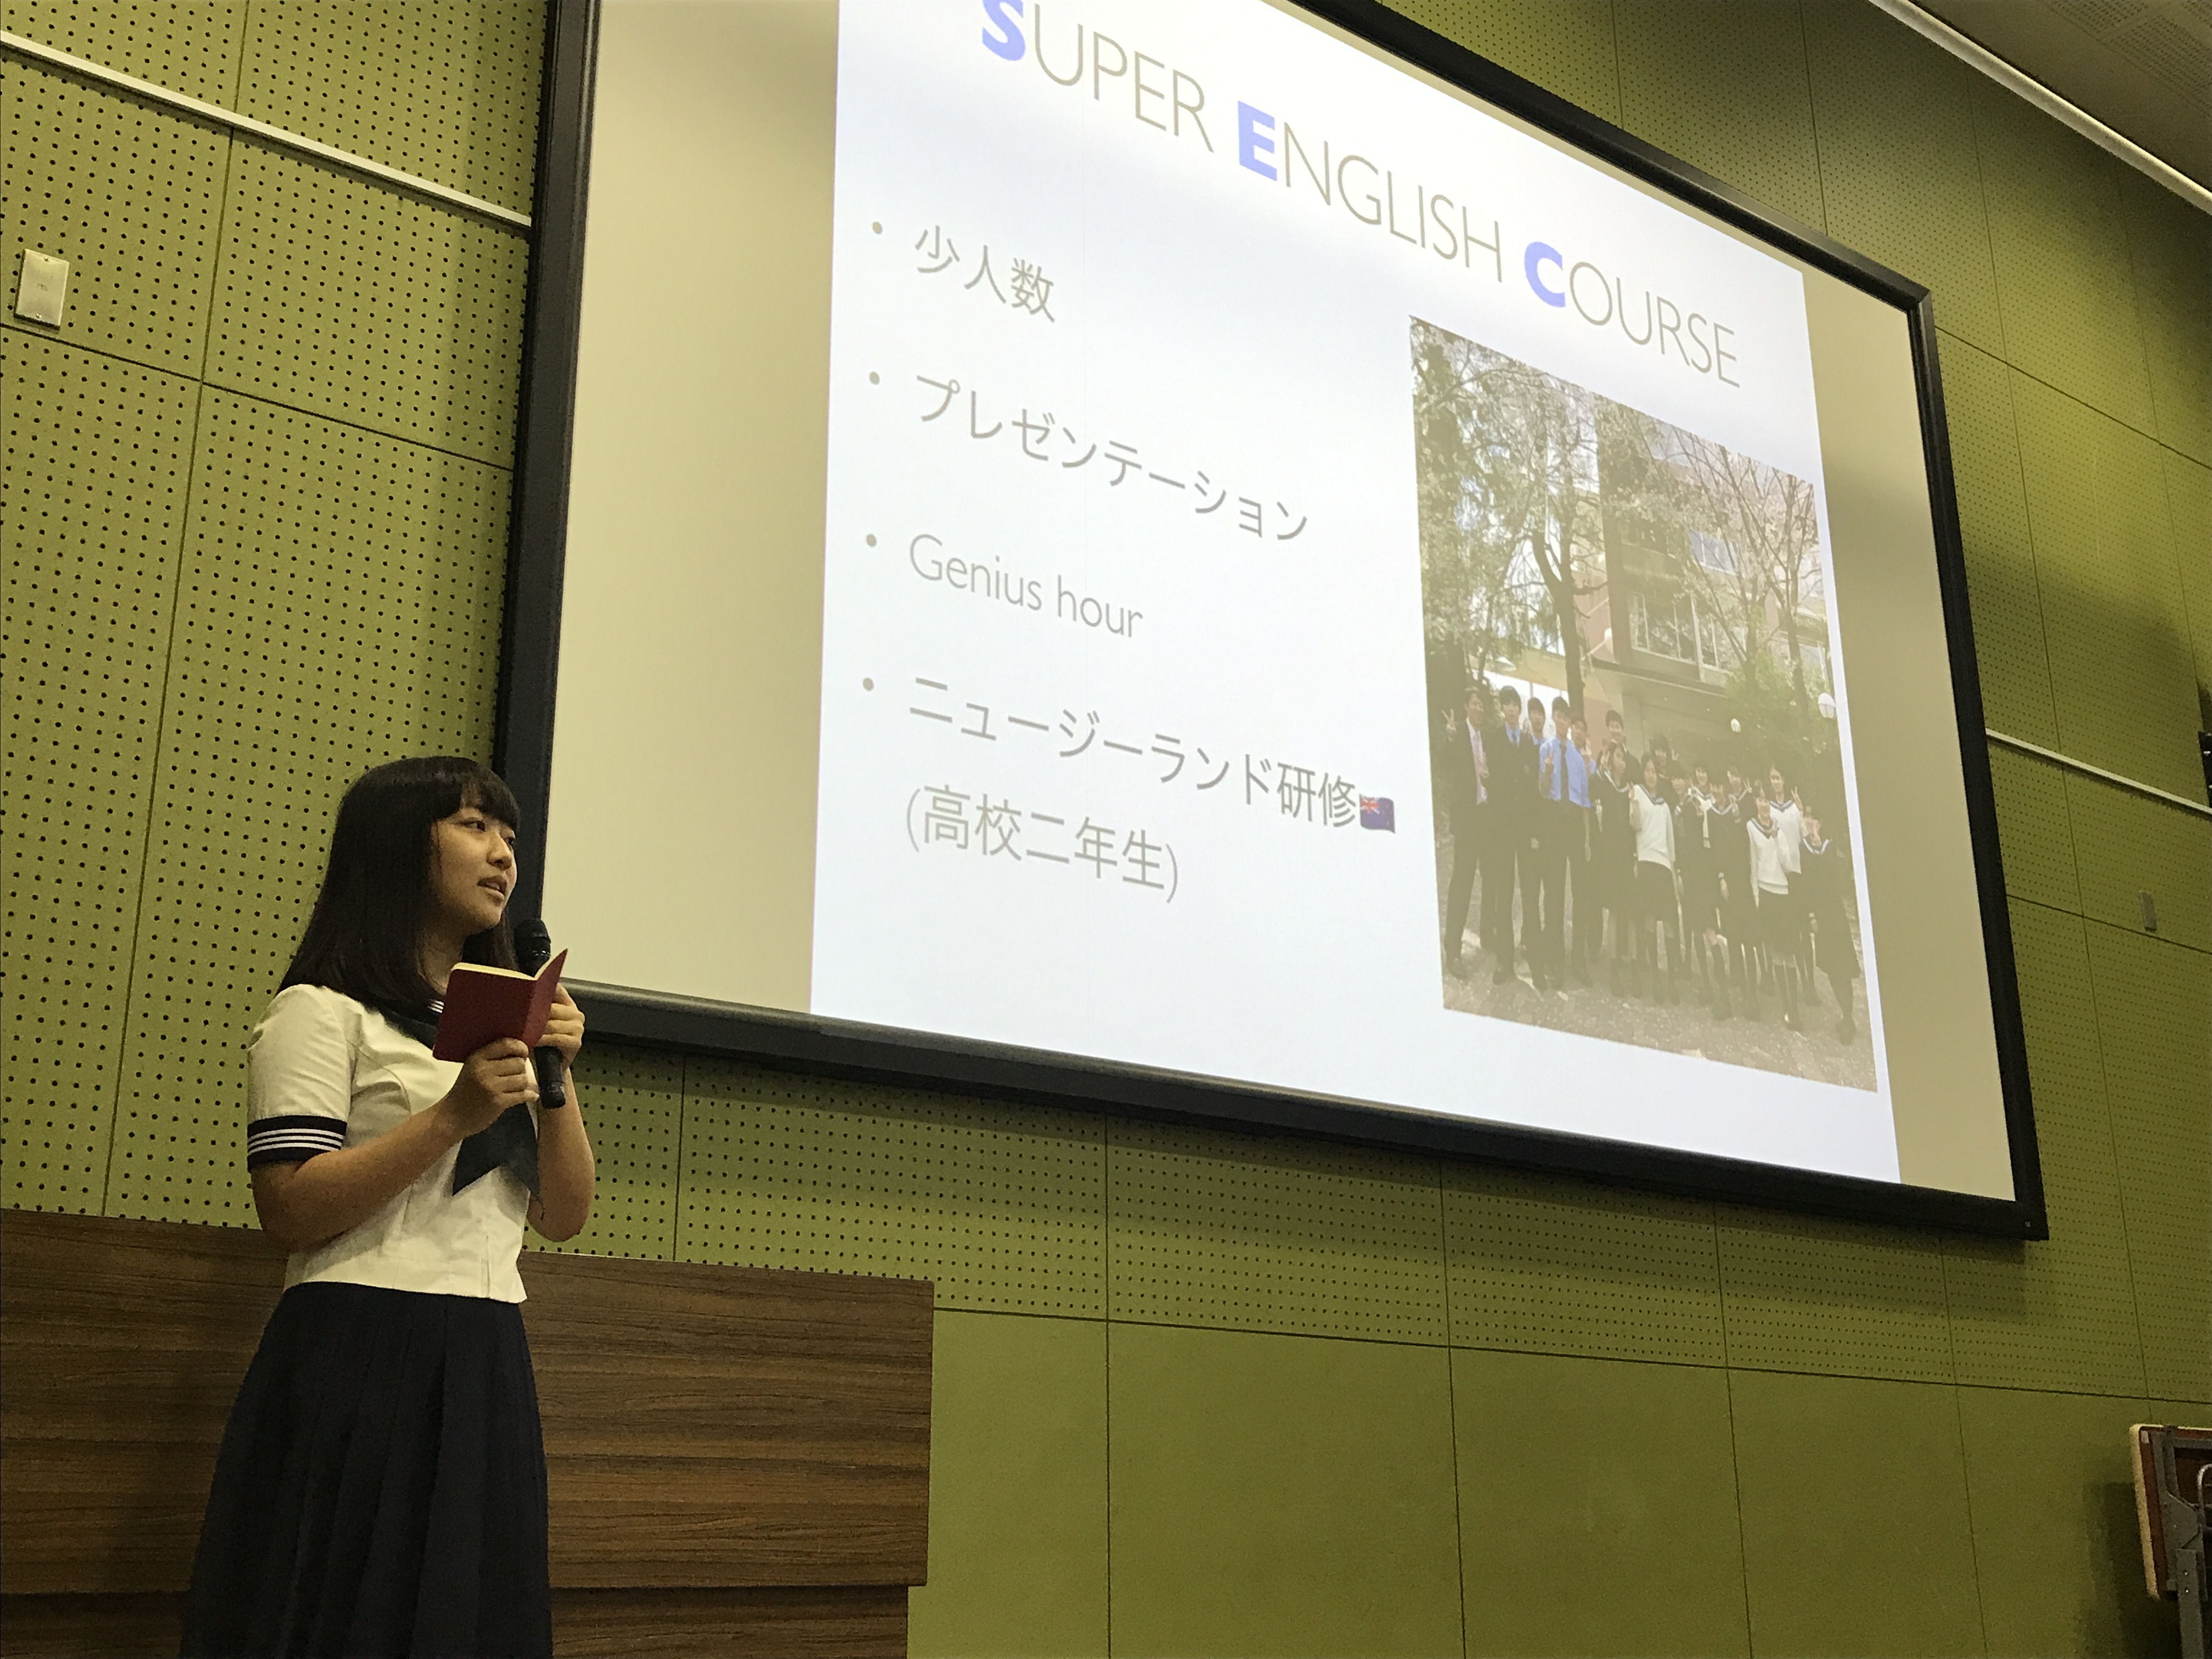 jh presentations by our graduates 沖縄アミークスインターナショナル